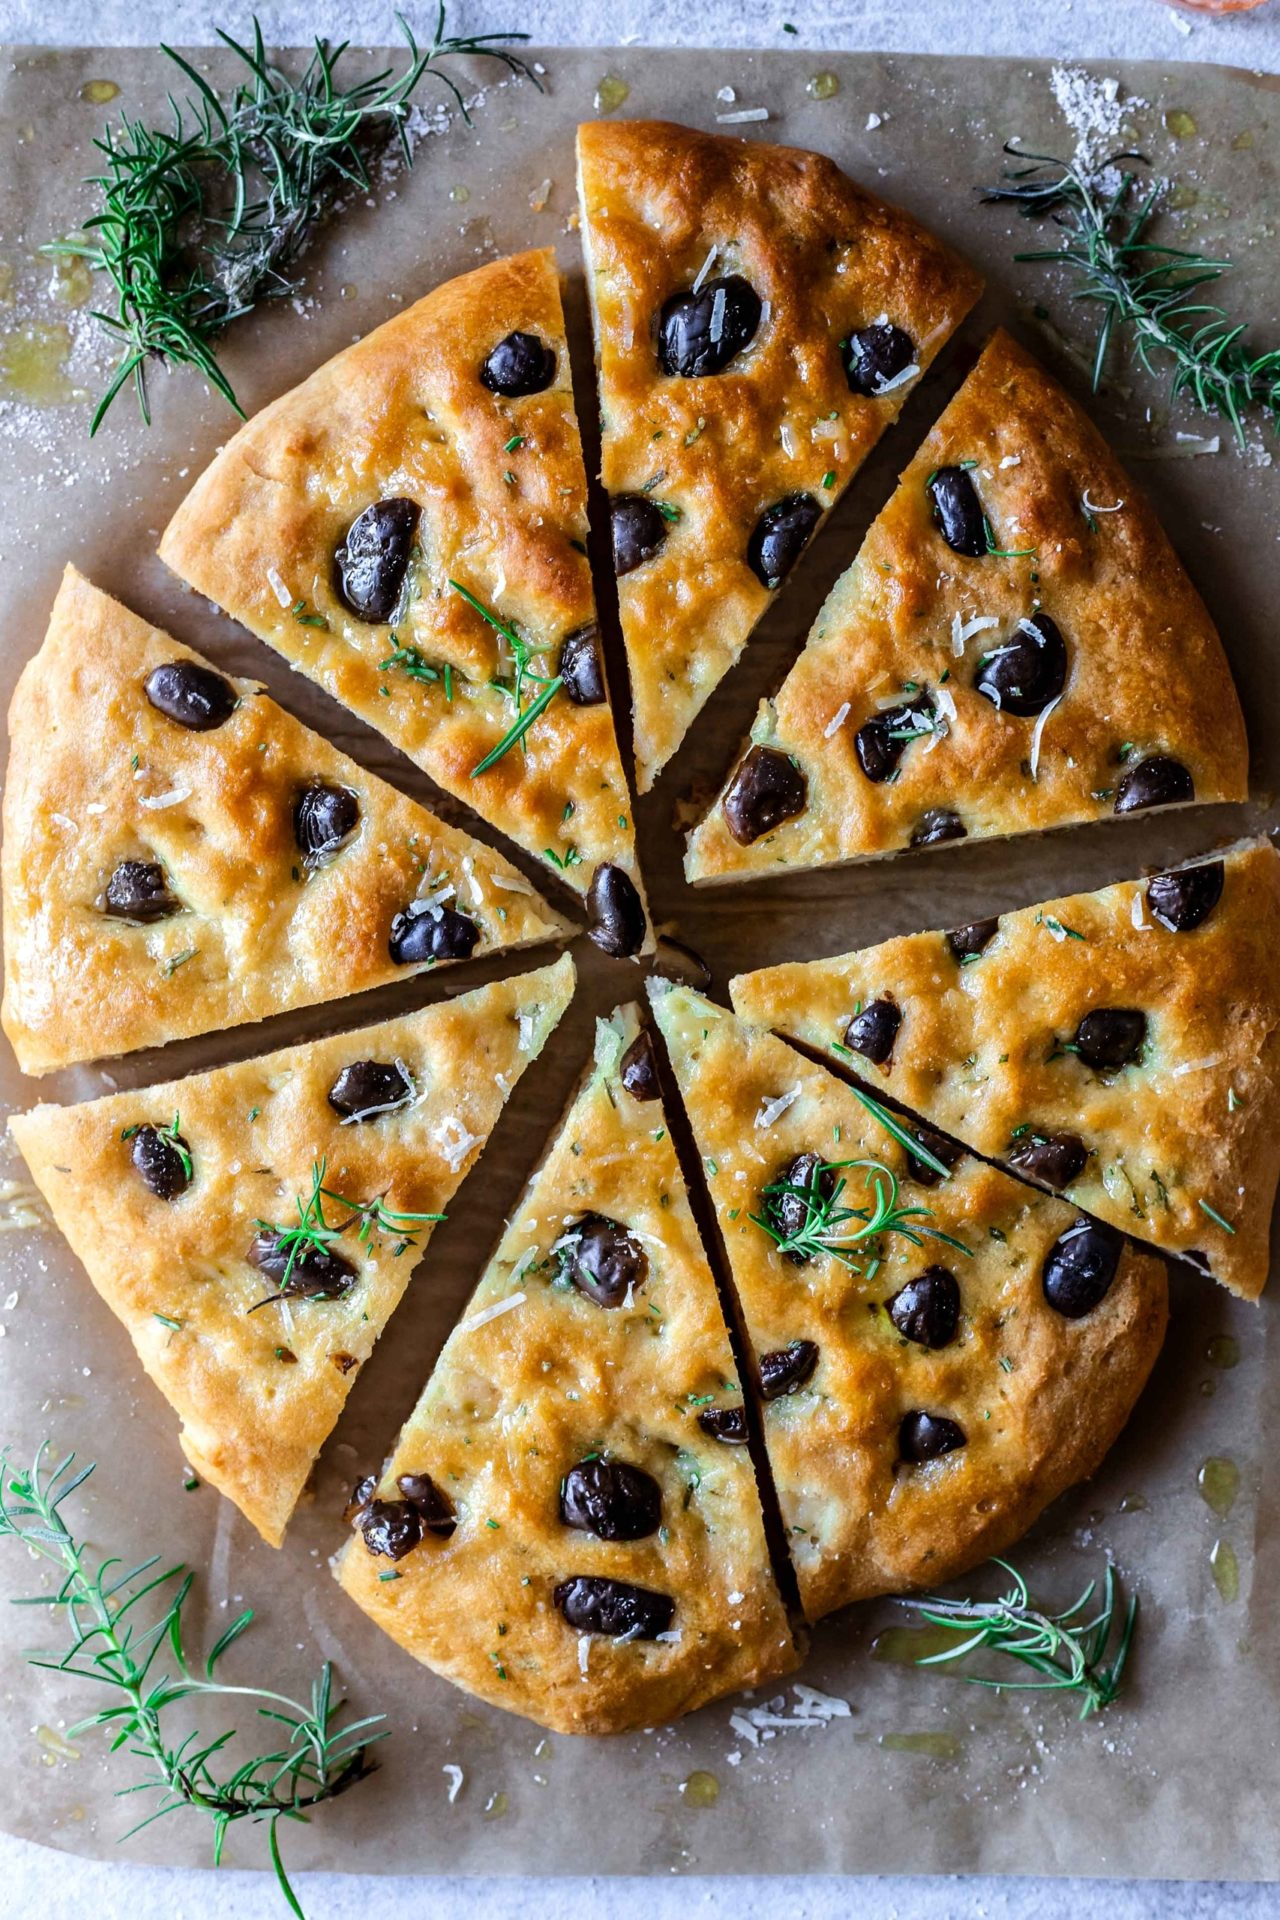 This Gluten-Free Focaccia Bread is pillowy soft, tender, bursting with flavour, satisfying, very simple to make and so delicious.